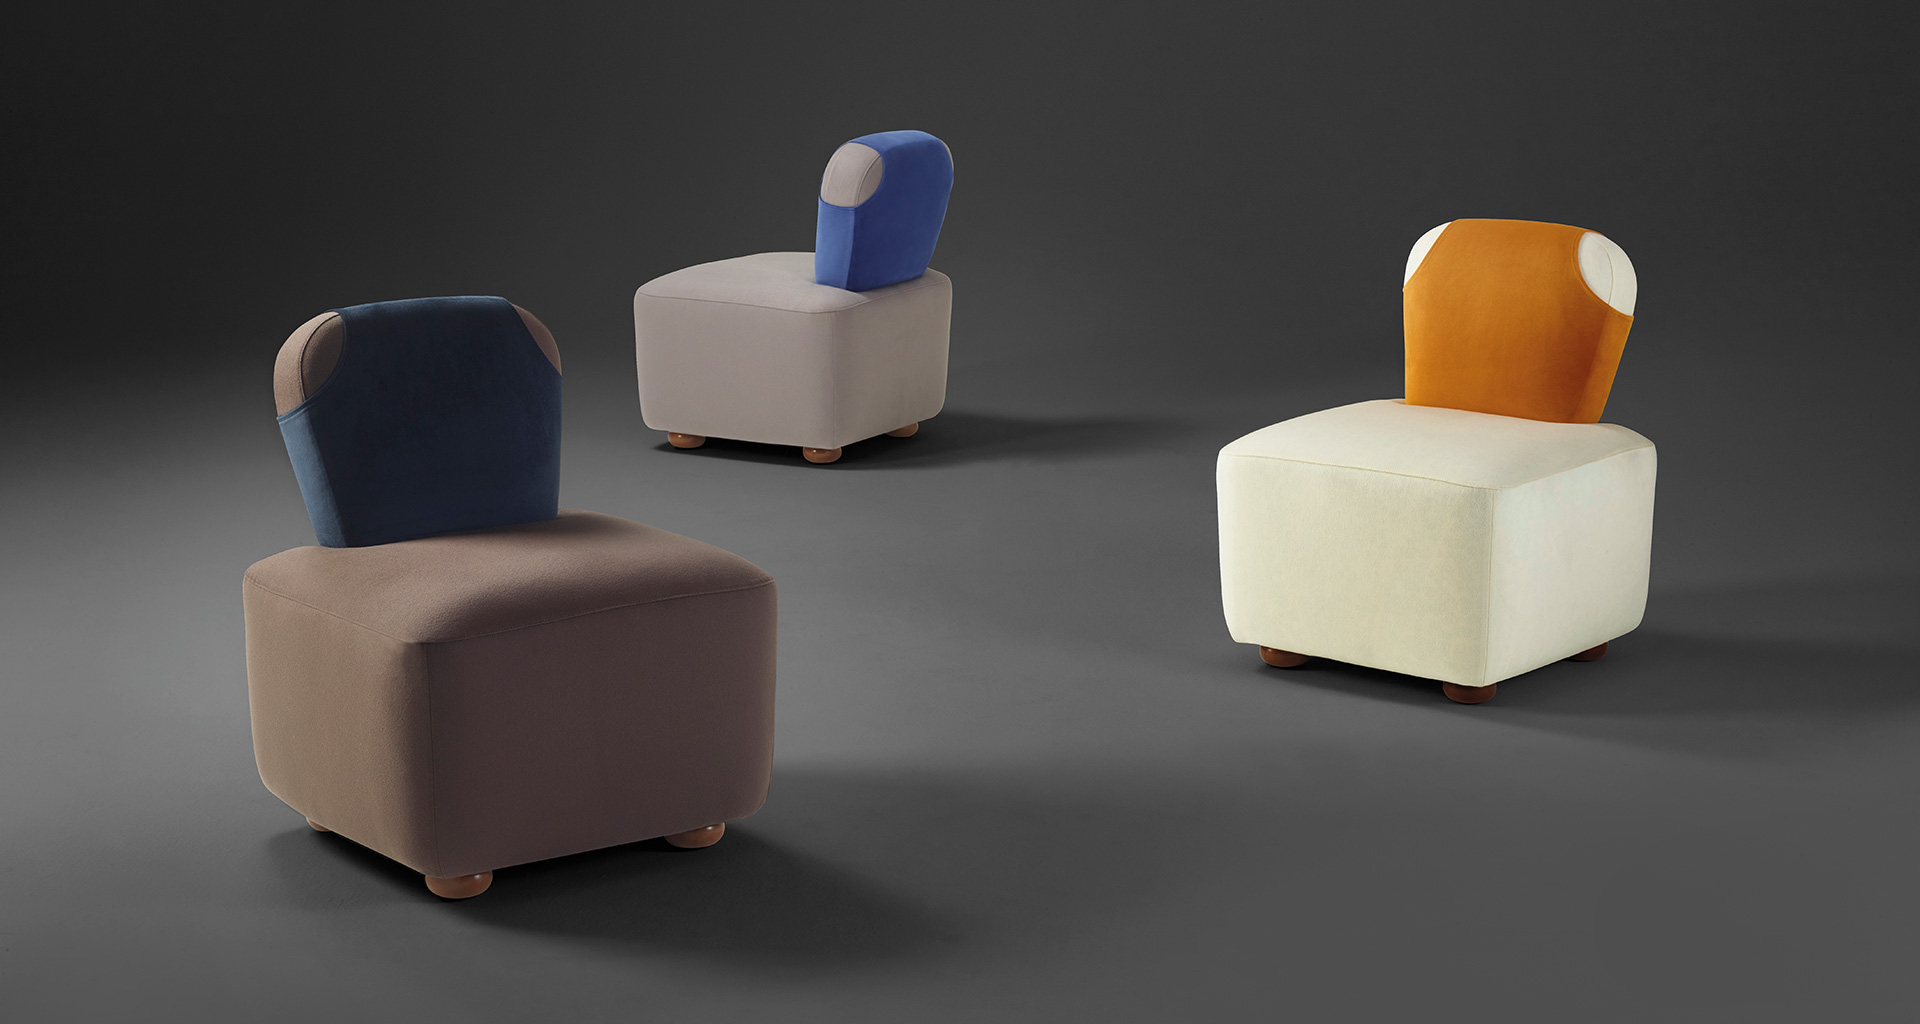 Bomb armchair that belongs to Indigo Tales, the 2018 Promemoria collection led by indigo color and presented during the Milan Design Week | Promemoria